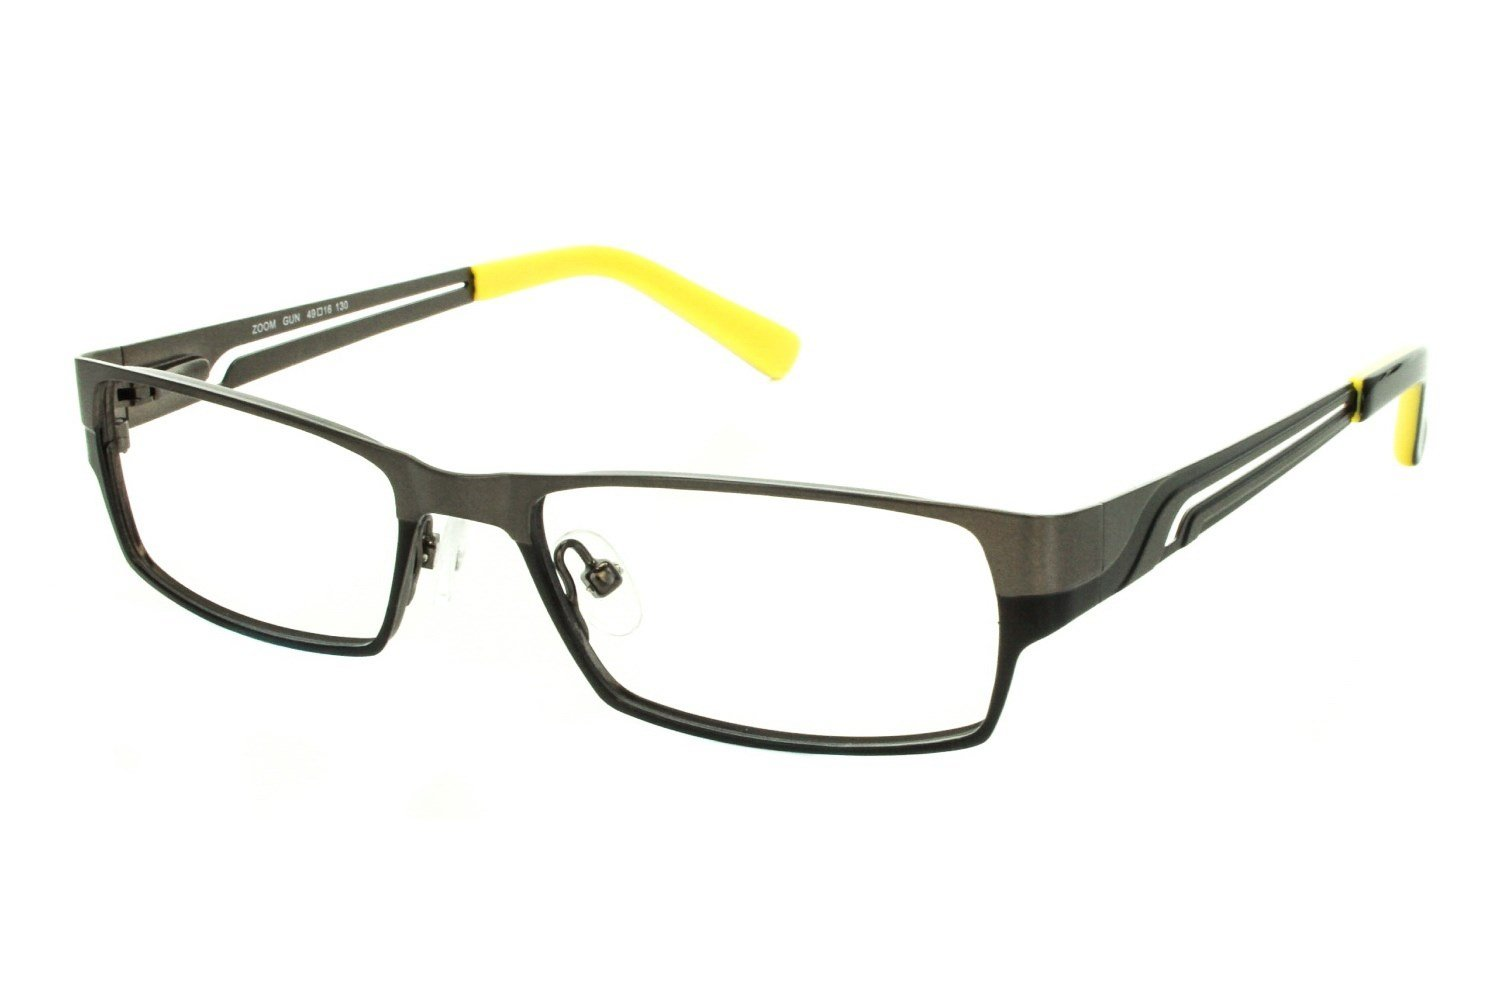 Glasses Frames With Prescription : Cantera Zoom Prescription Eyeglasses - properopticallook